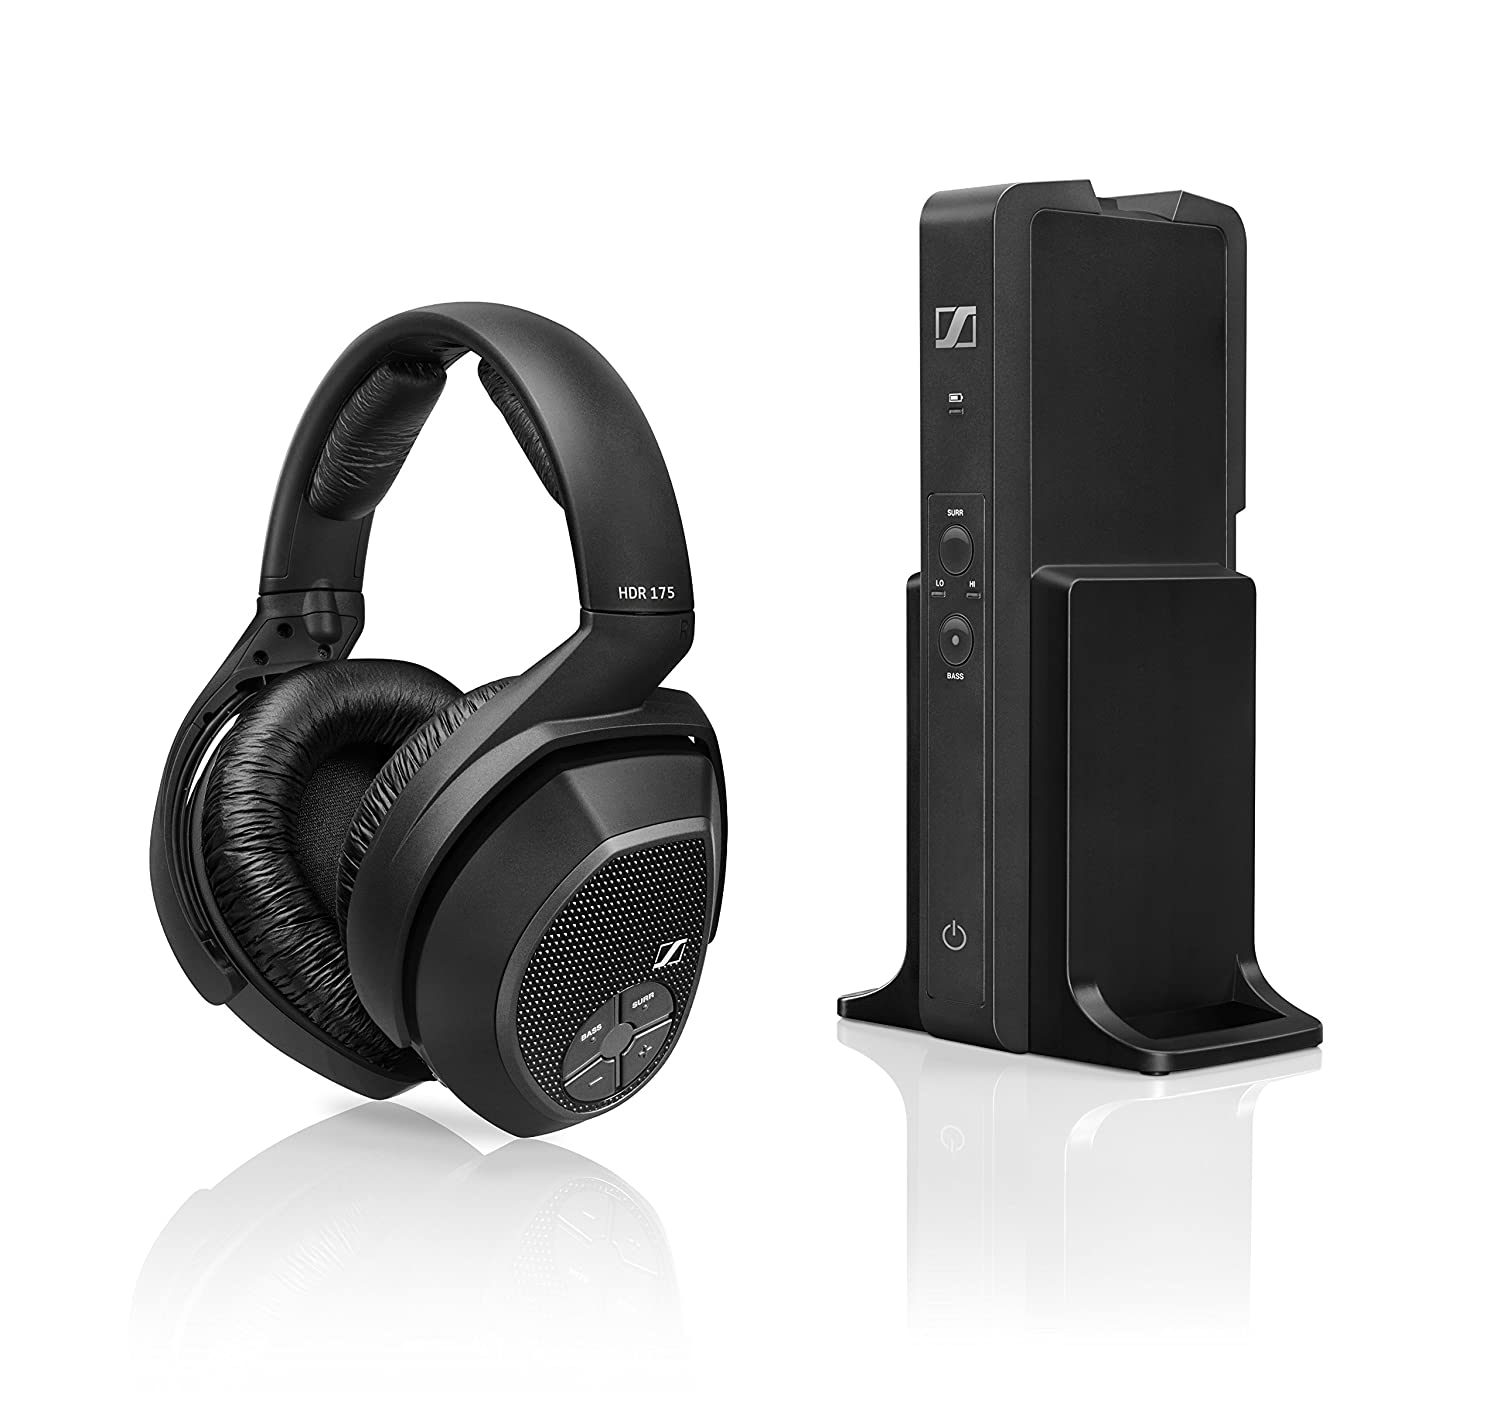 Cuffie Wireless Digitali Sennheiser RS 175